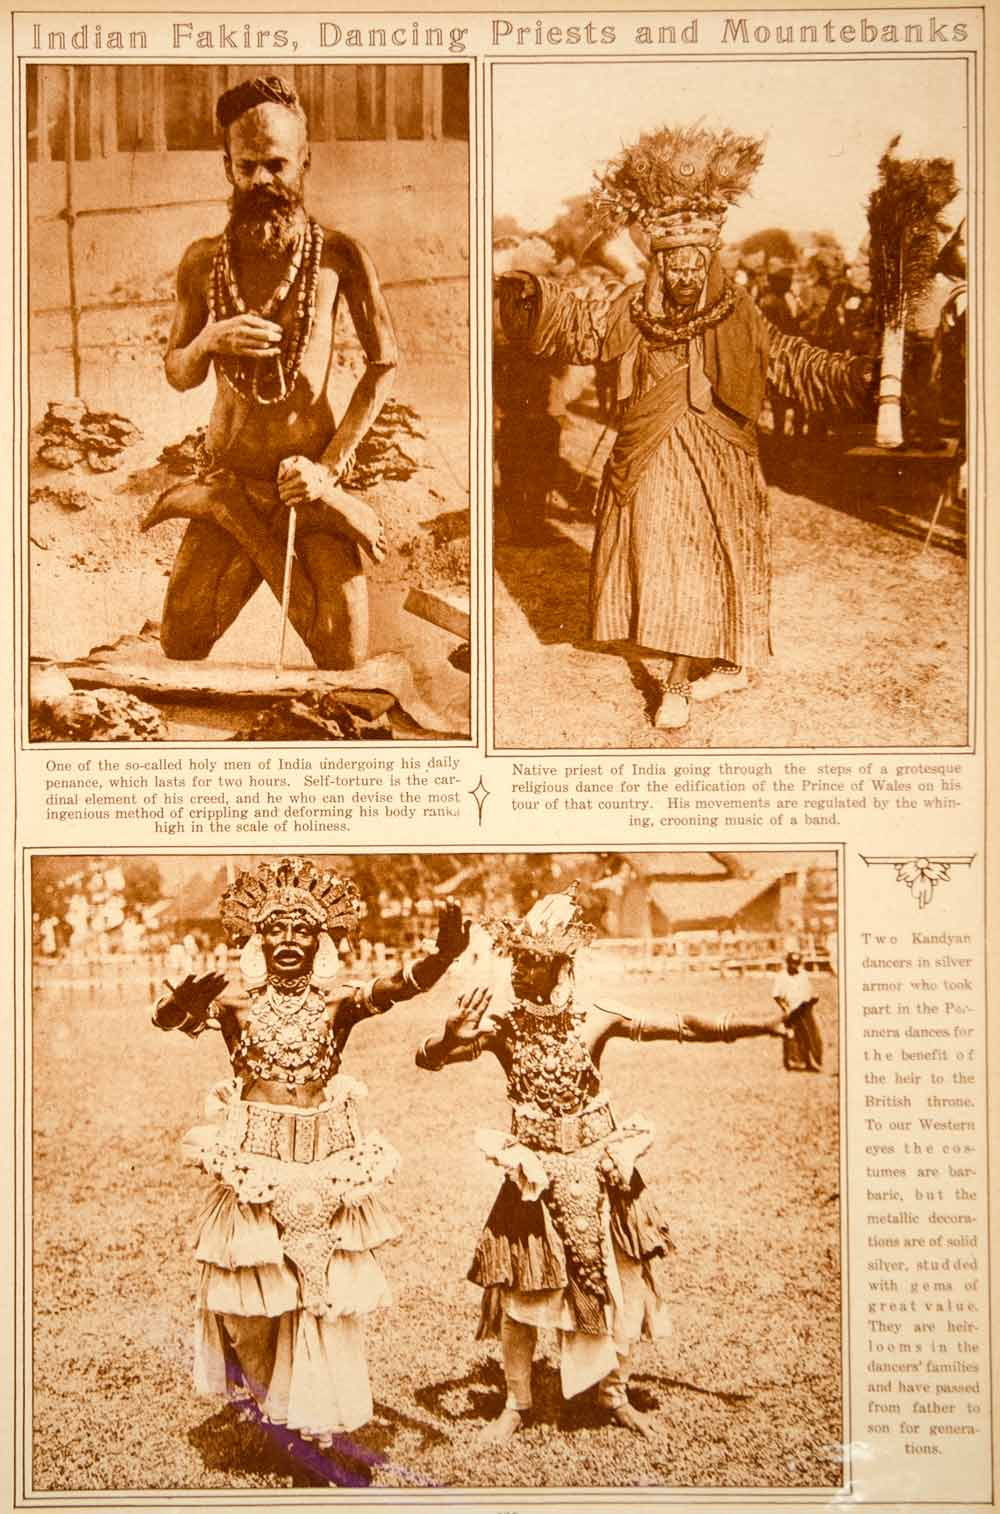 1923 Rotogravure India Indian Fakir Holy Man Priest Kandyan Dancers Costume